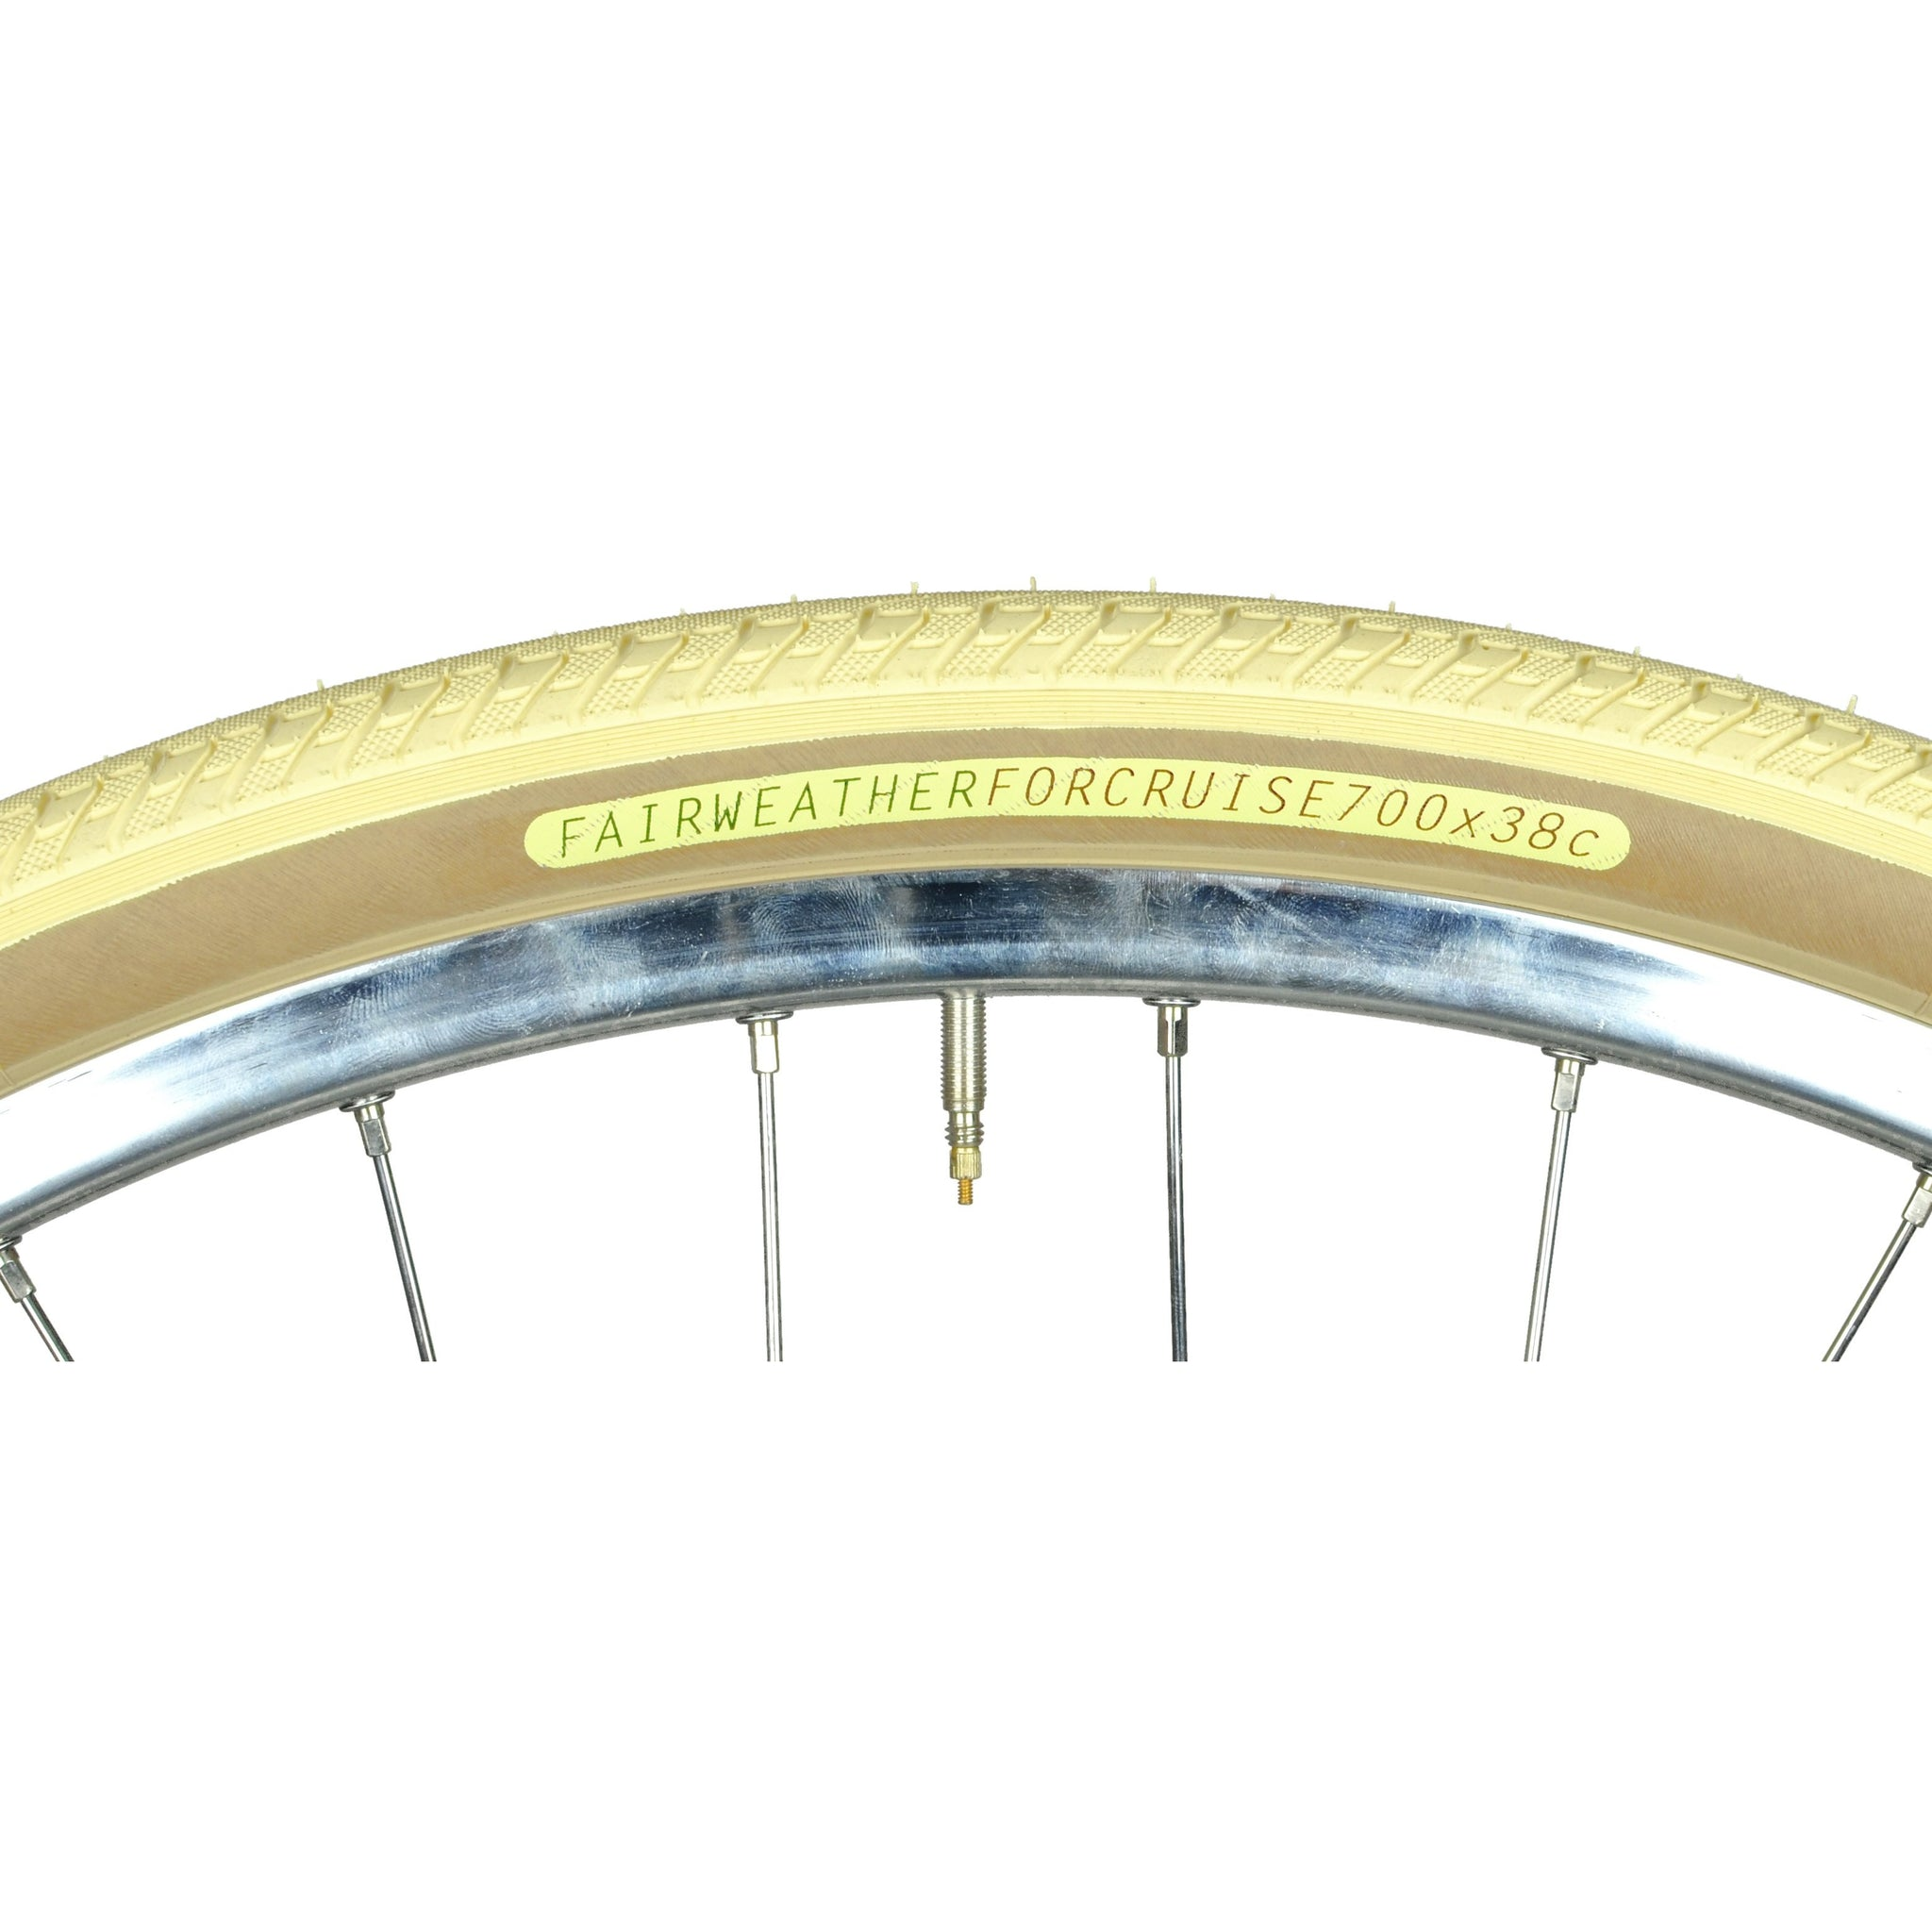 "Fairweather Touring ""Cruise"" Tire, 700x38c"